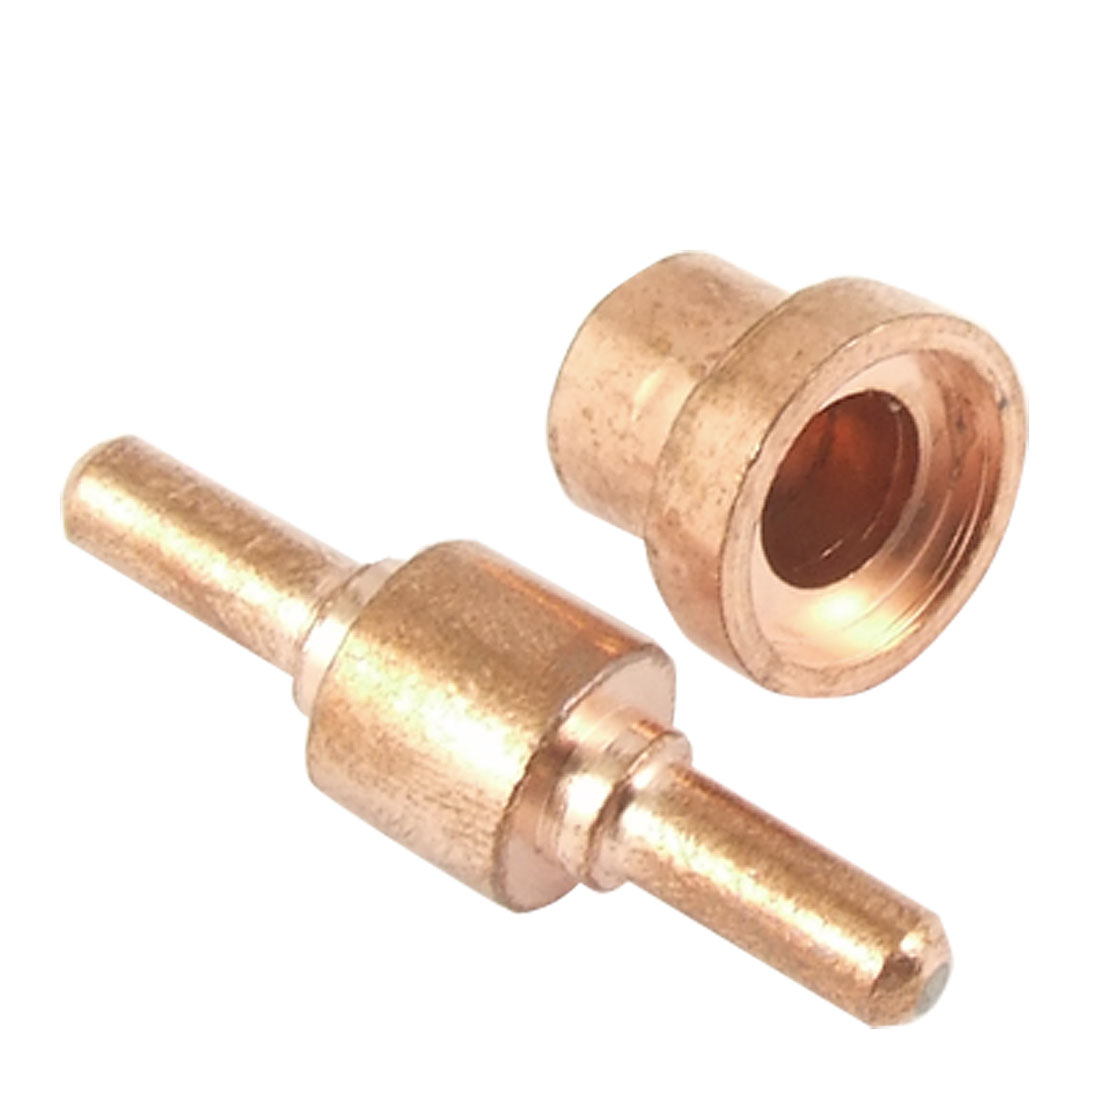 Replacement Copper Tone Welding Double Head Tip w Nozzle